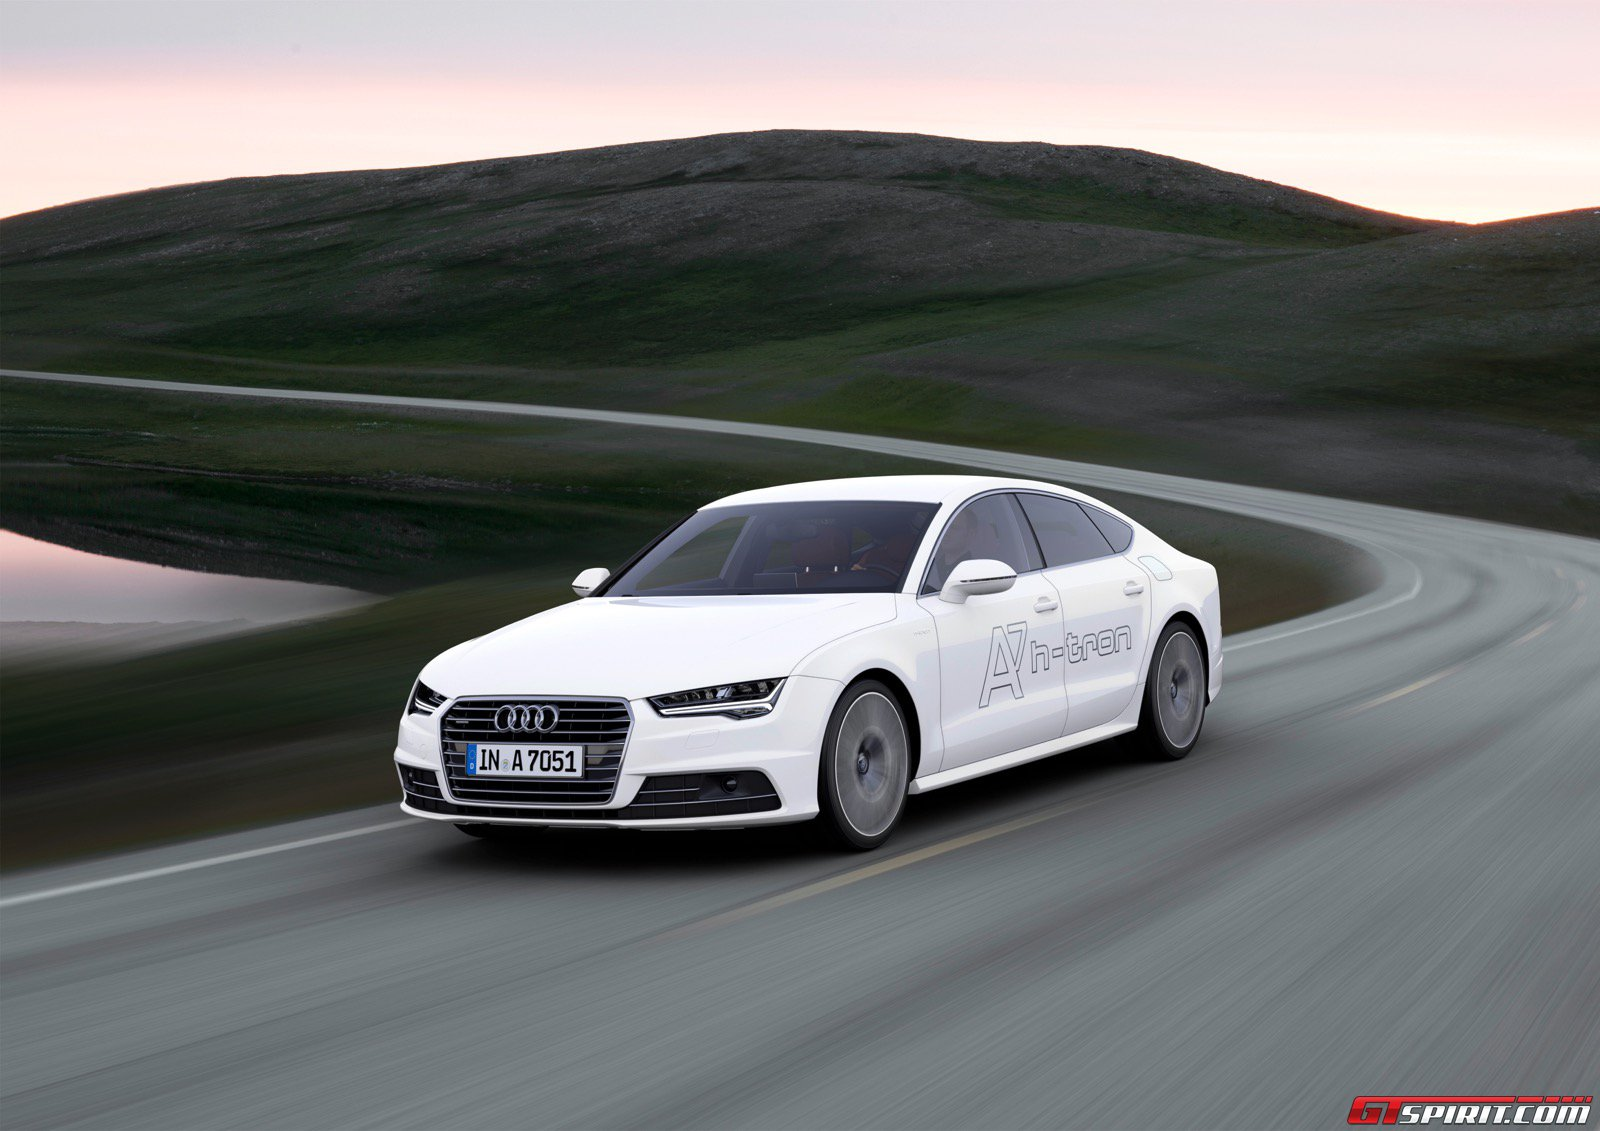 production audi a7 sportback h tron quattro possible gtspirit. Black Bedroom Furniture Sets. Home Design Ideas